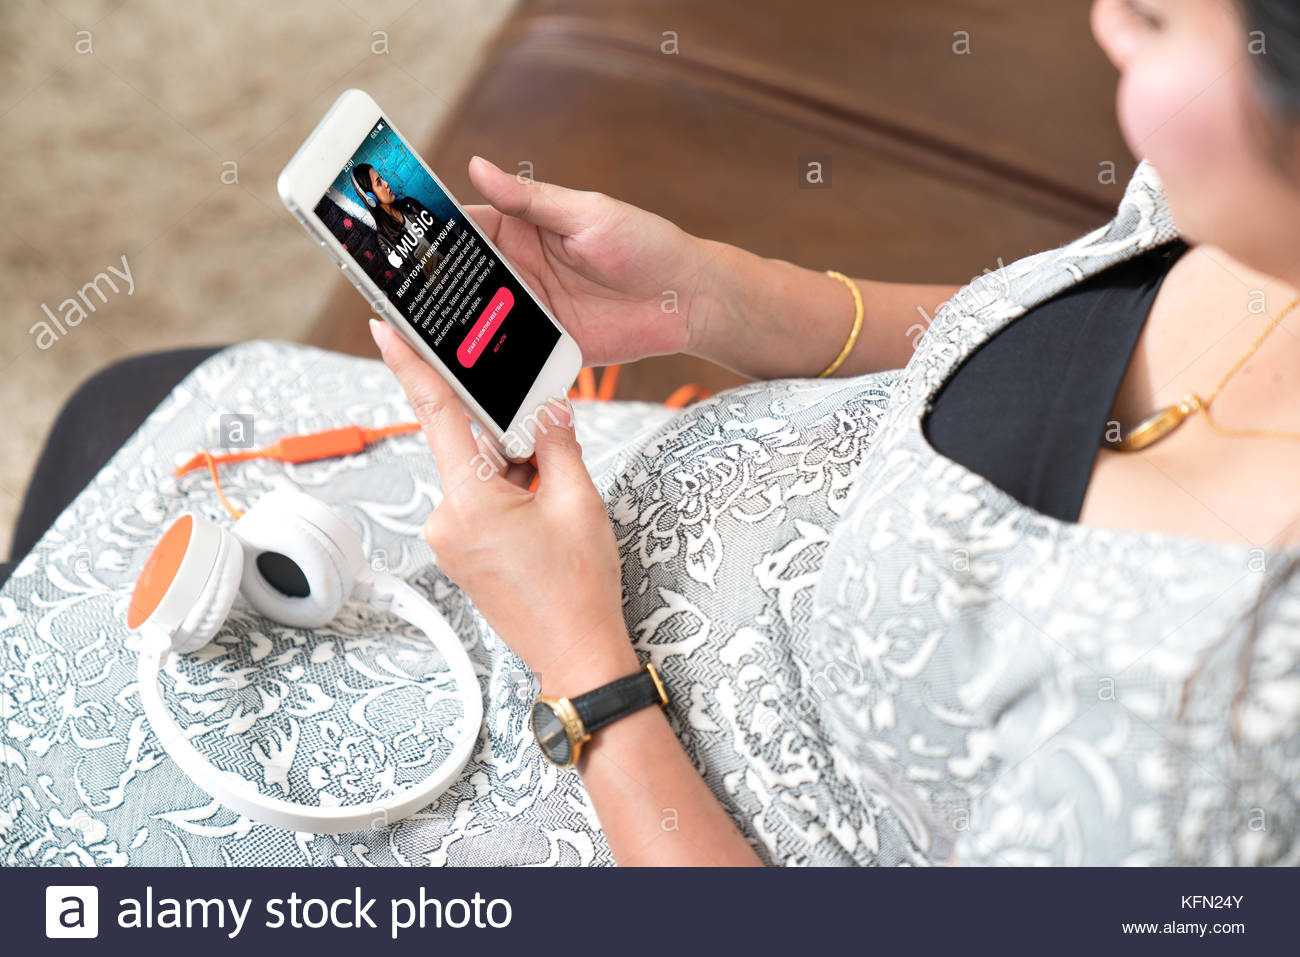 relax: Bangkok - December 12 2016: pregnant woman using an iPhone screenshot of Apple's Music app that shows - Stock Image